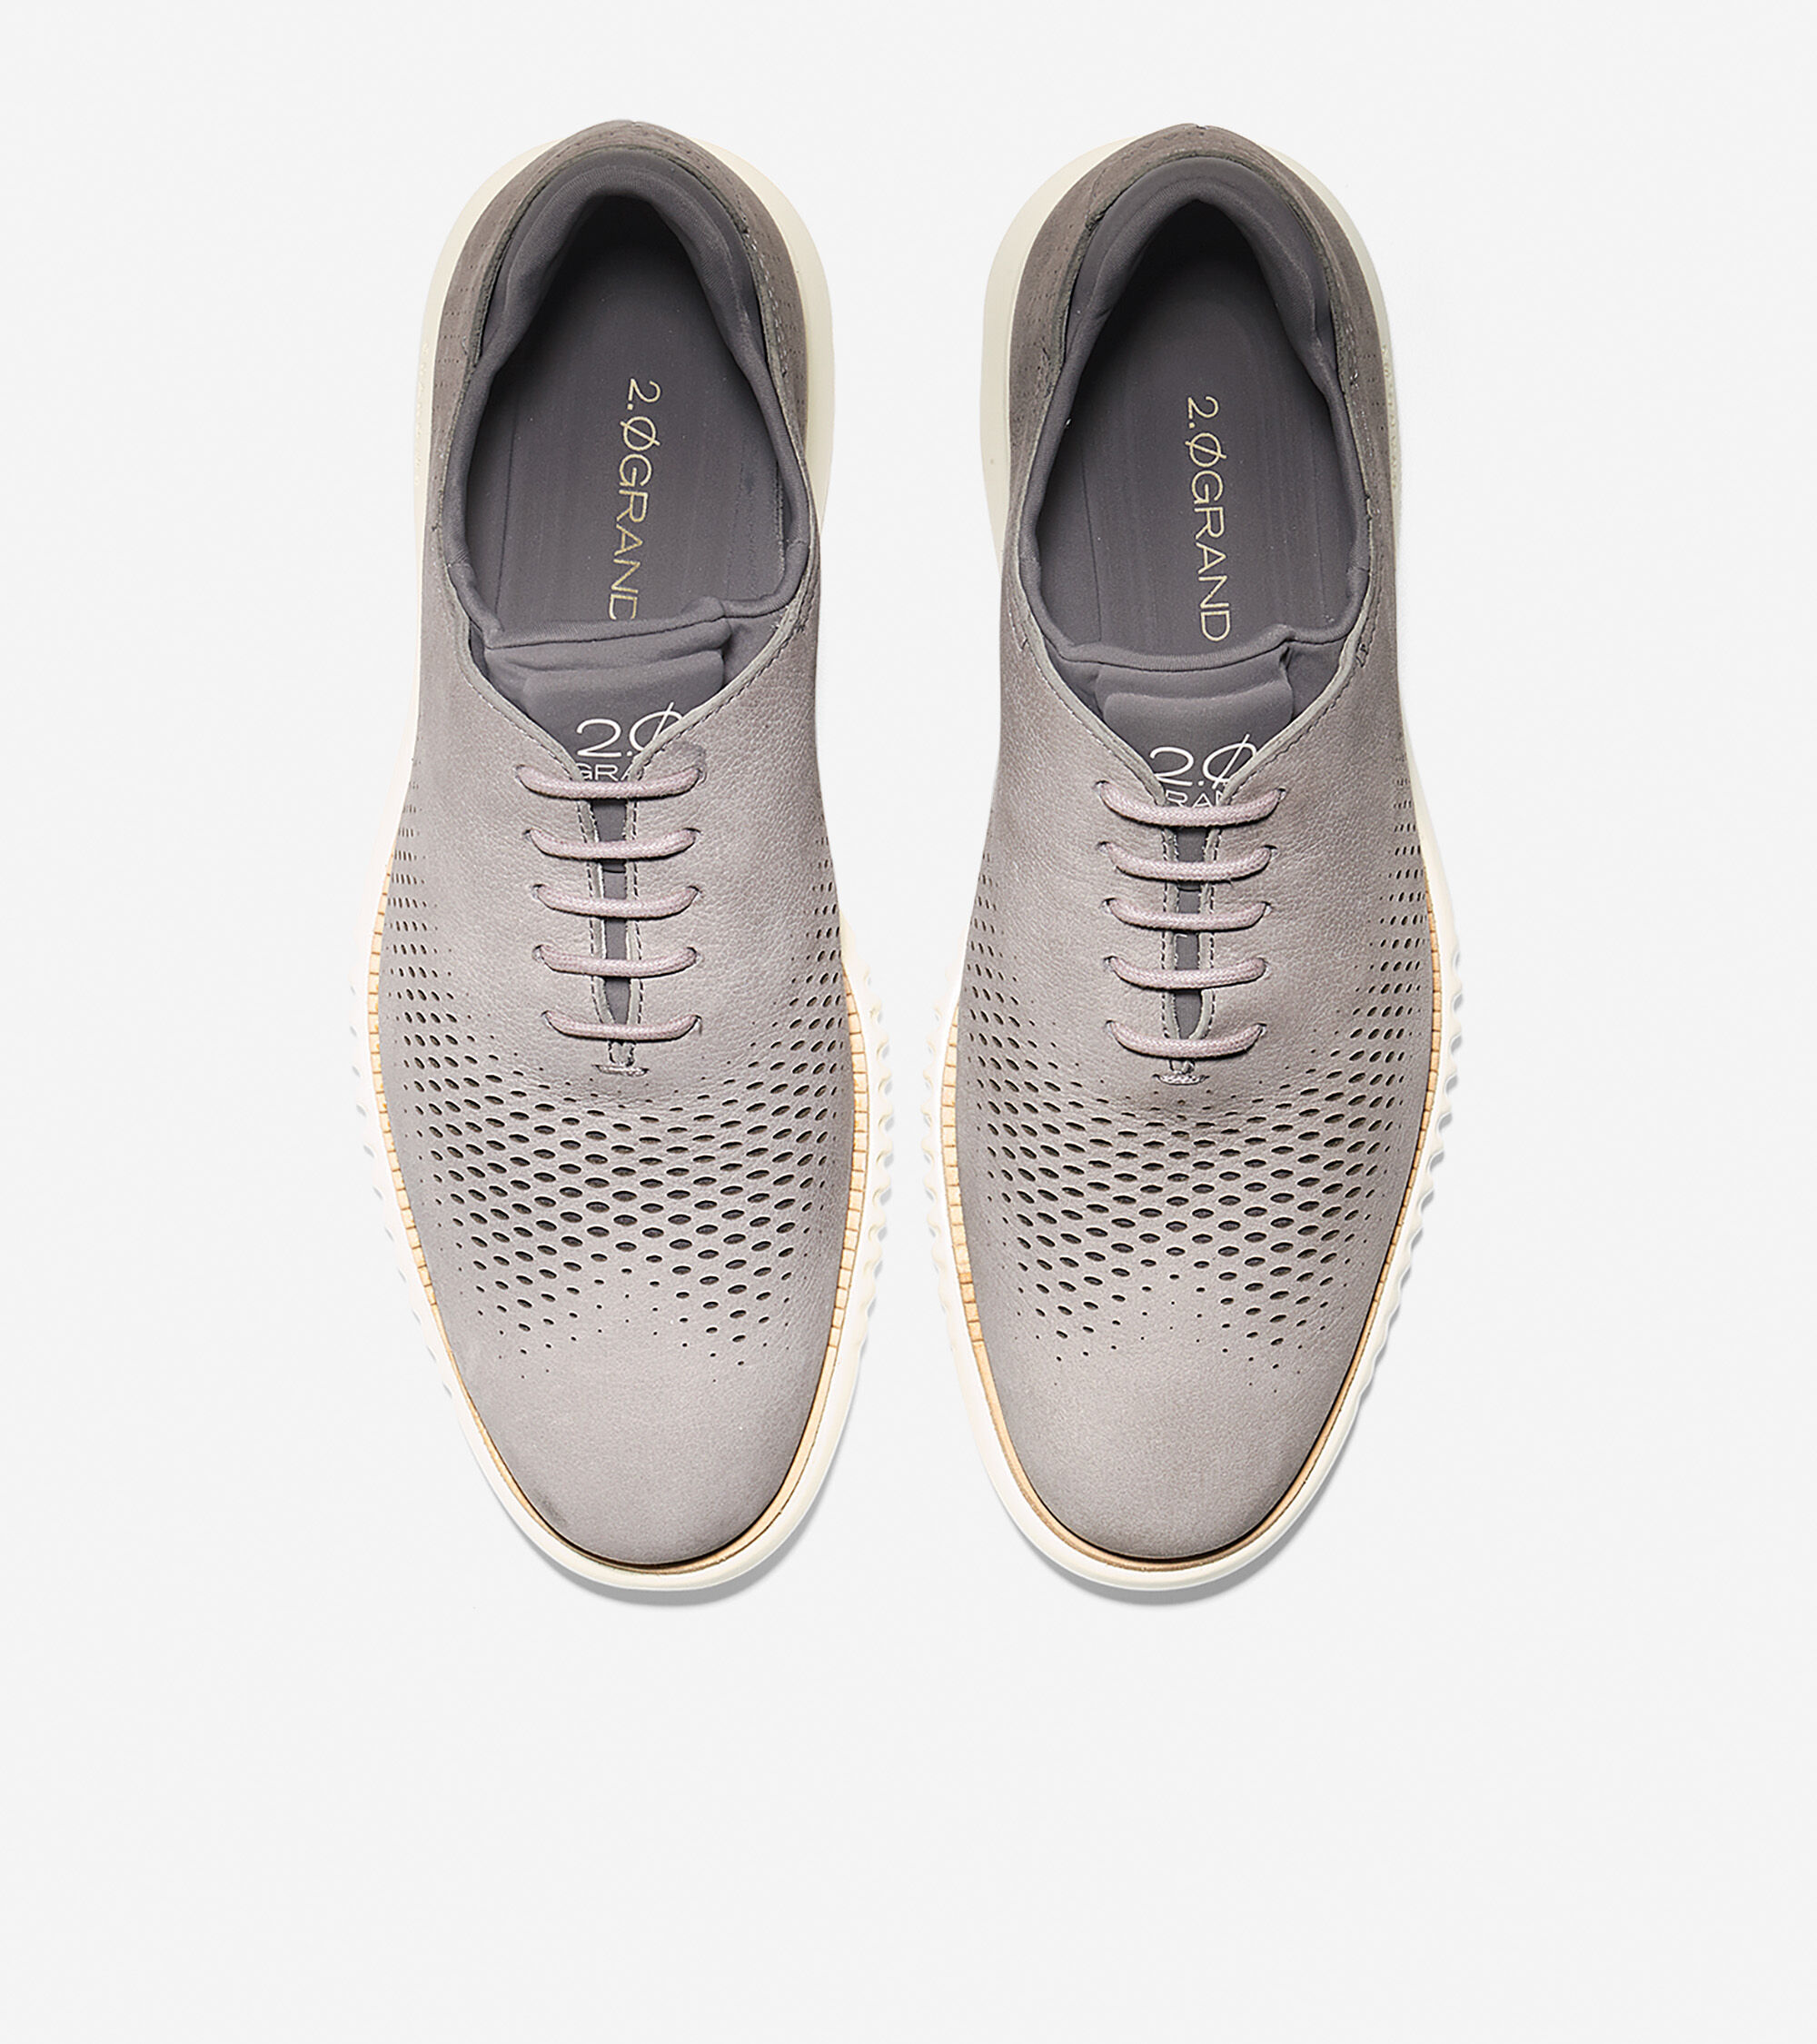 60fff3f2f1c 2.ZEROGRAND Laser Wingtip Oxfords in Ironstone-Ivory